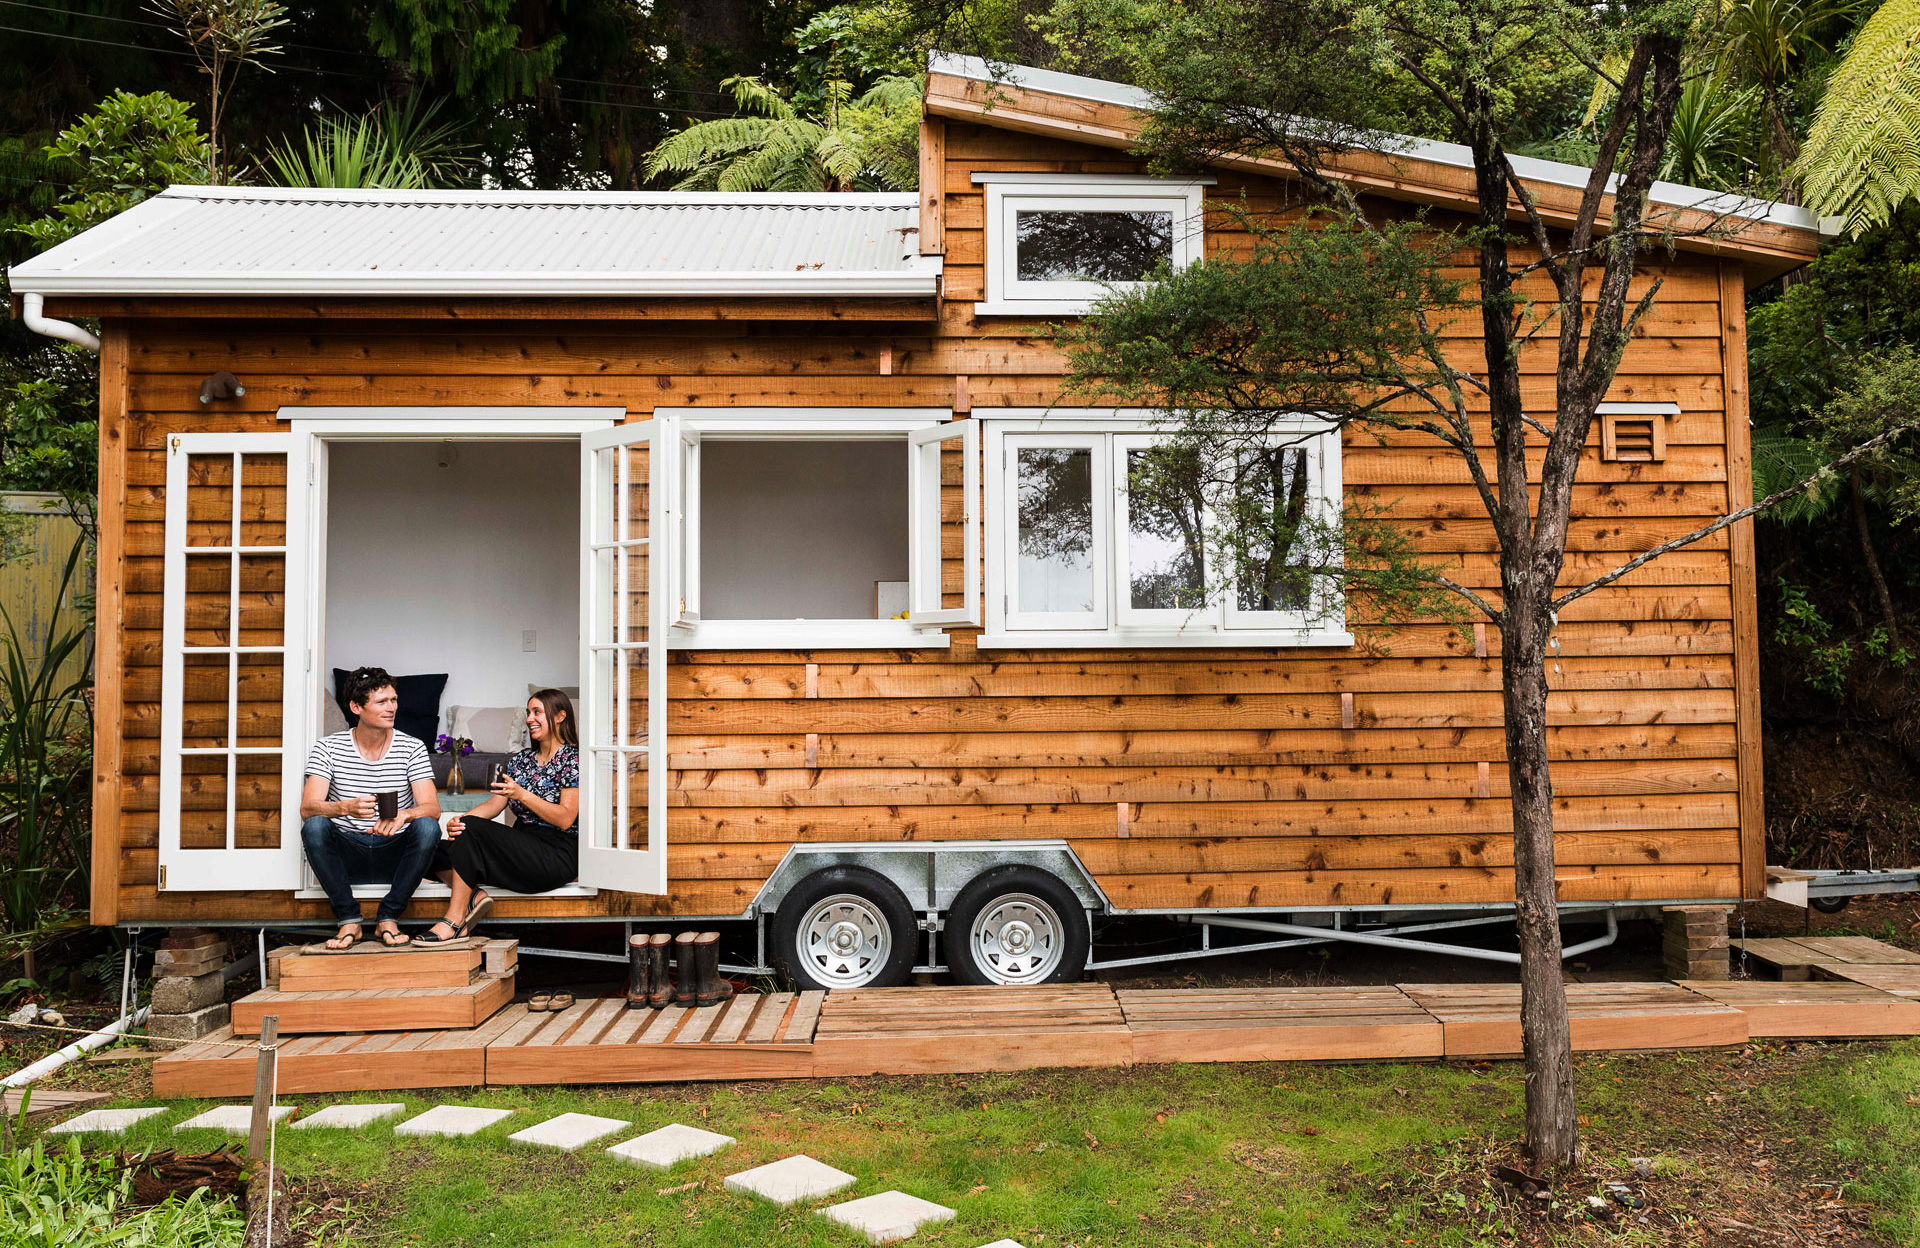 A legally parked Tiny Home in a backyard